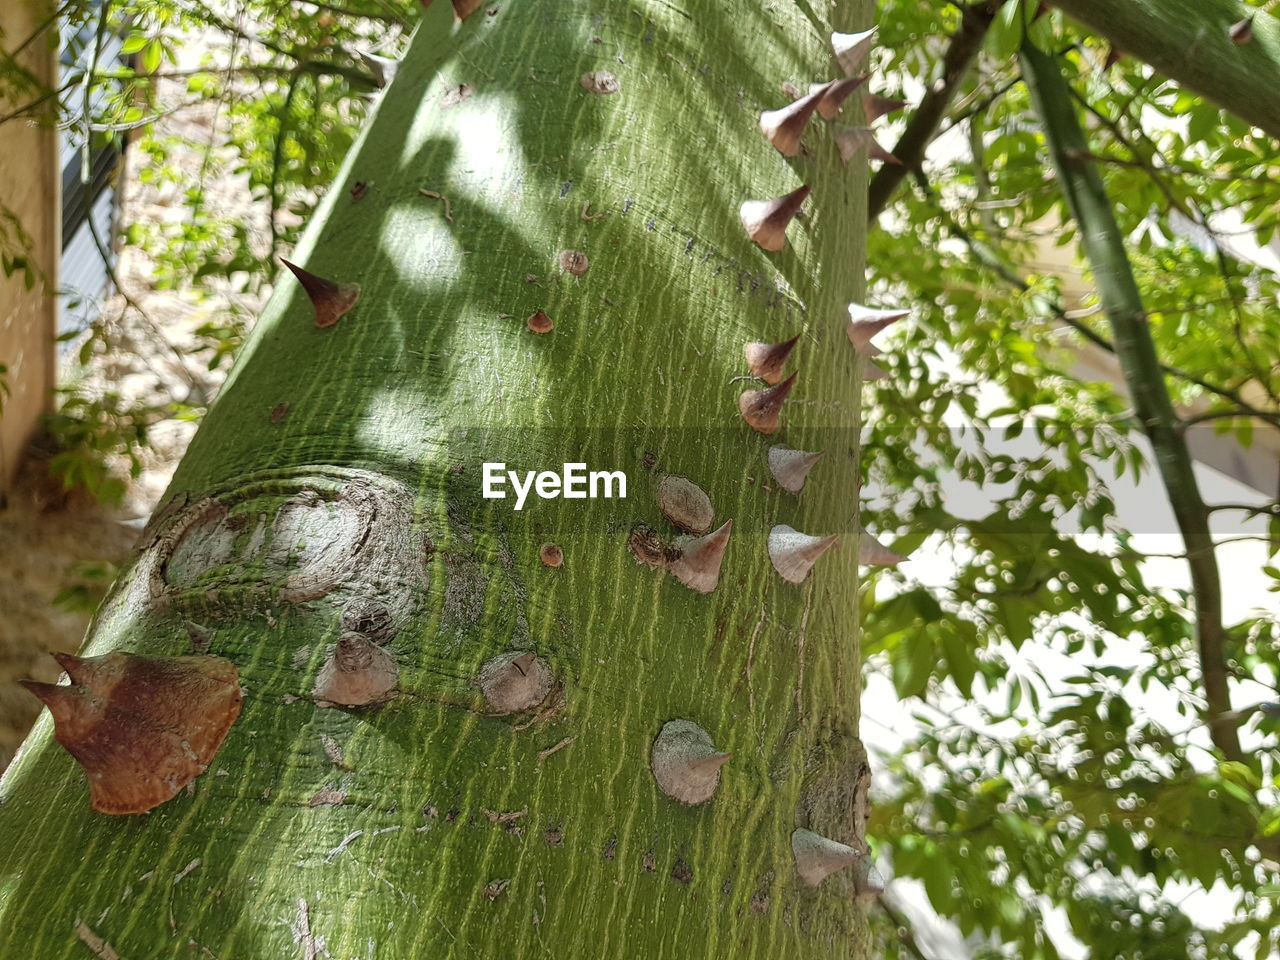 tree, plant, nature, green color, focus on foreground, day, animal themes, animal wildlife, animal, growth, invertebrate, animals in the wild, tree trunk, trunk, insect, forest, no people, close-up, outdoors, low angle view